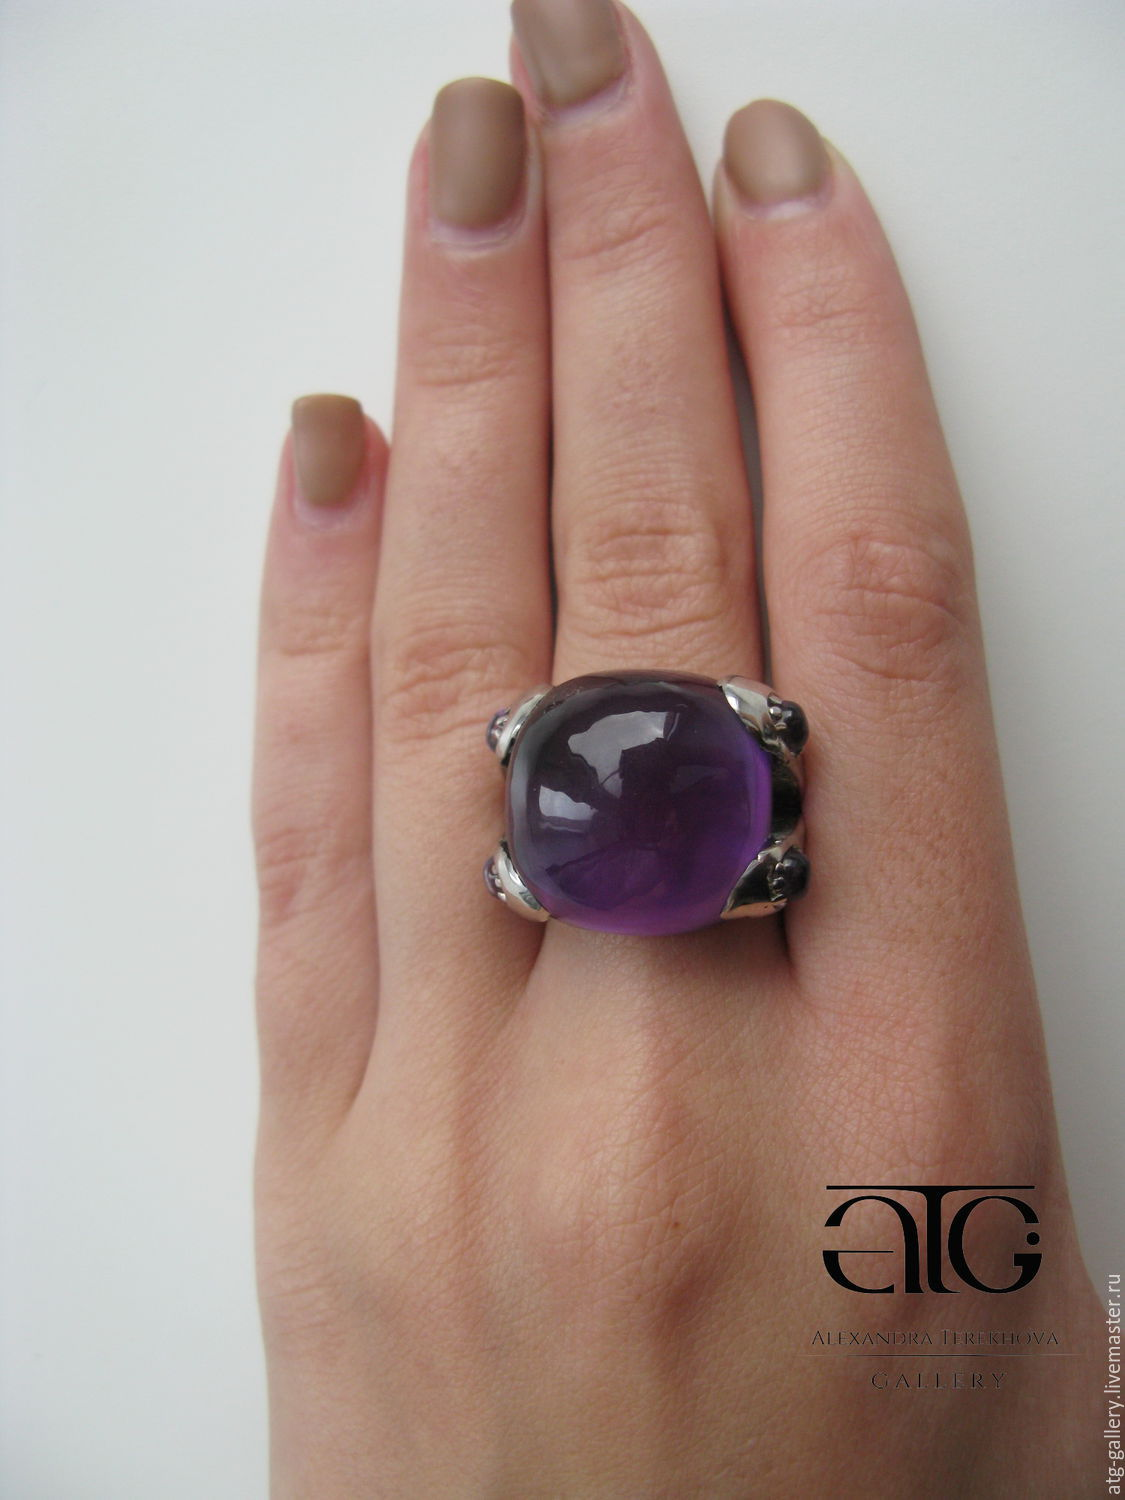 Gorgeous stylish ring with genuine amethysts cabochons!